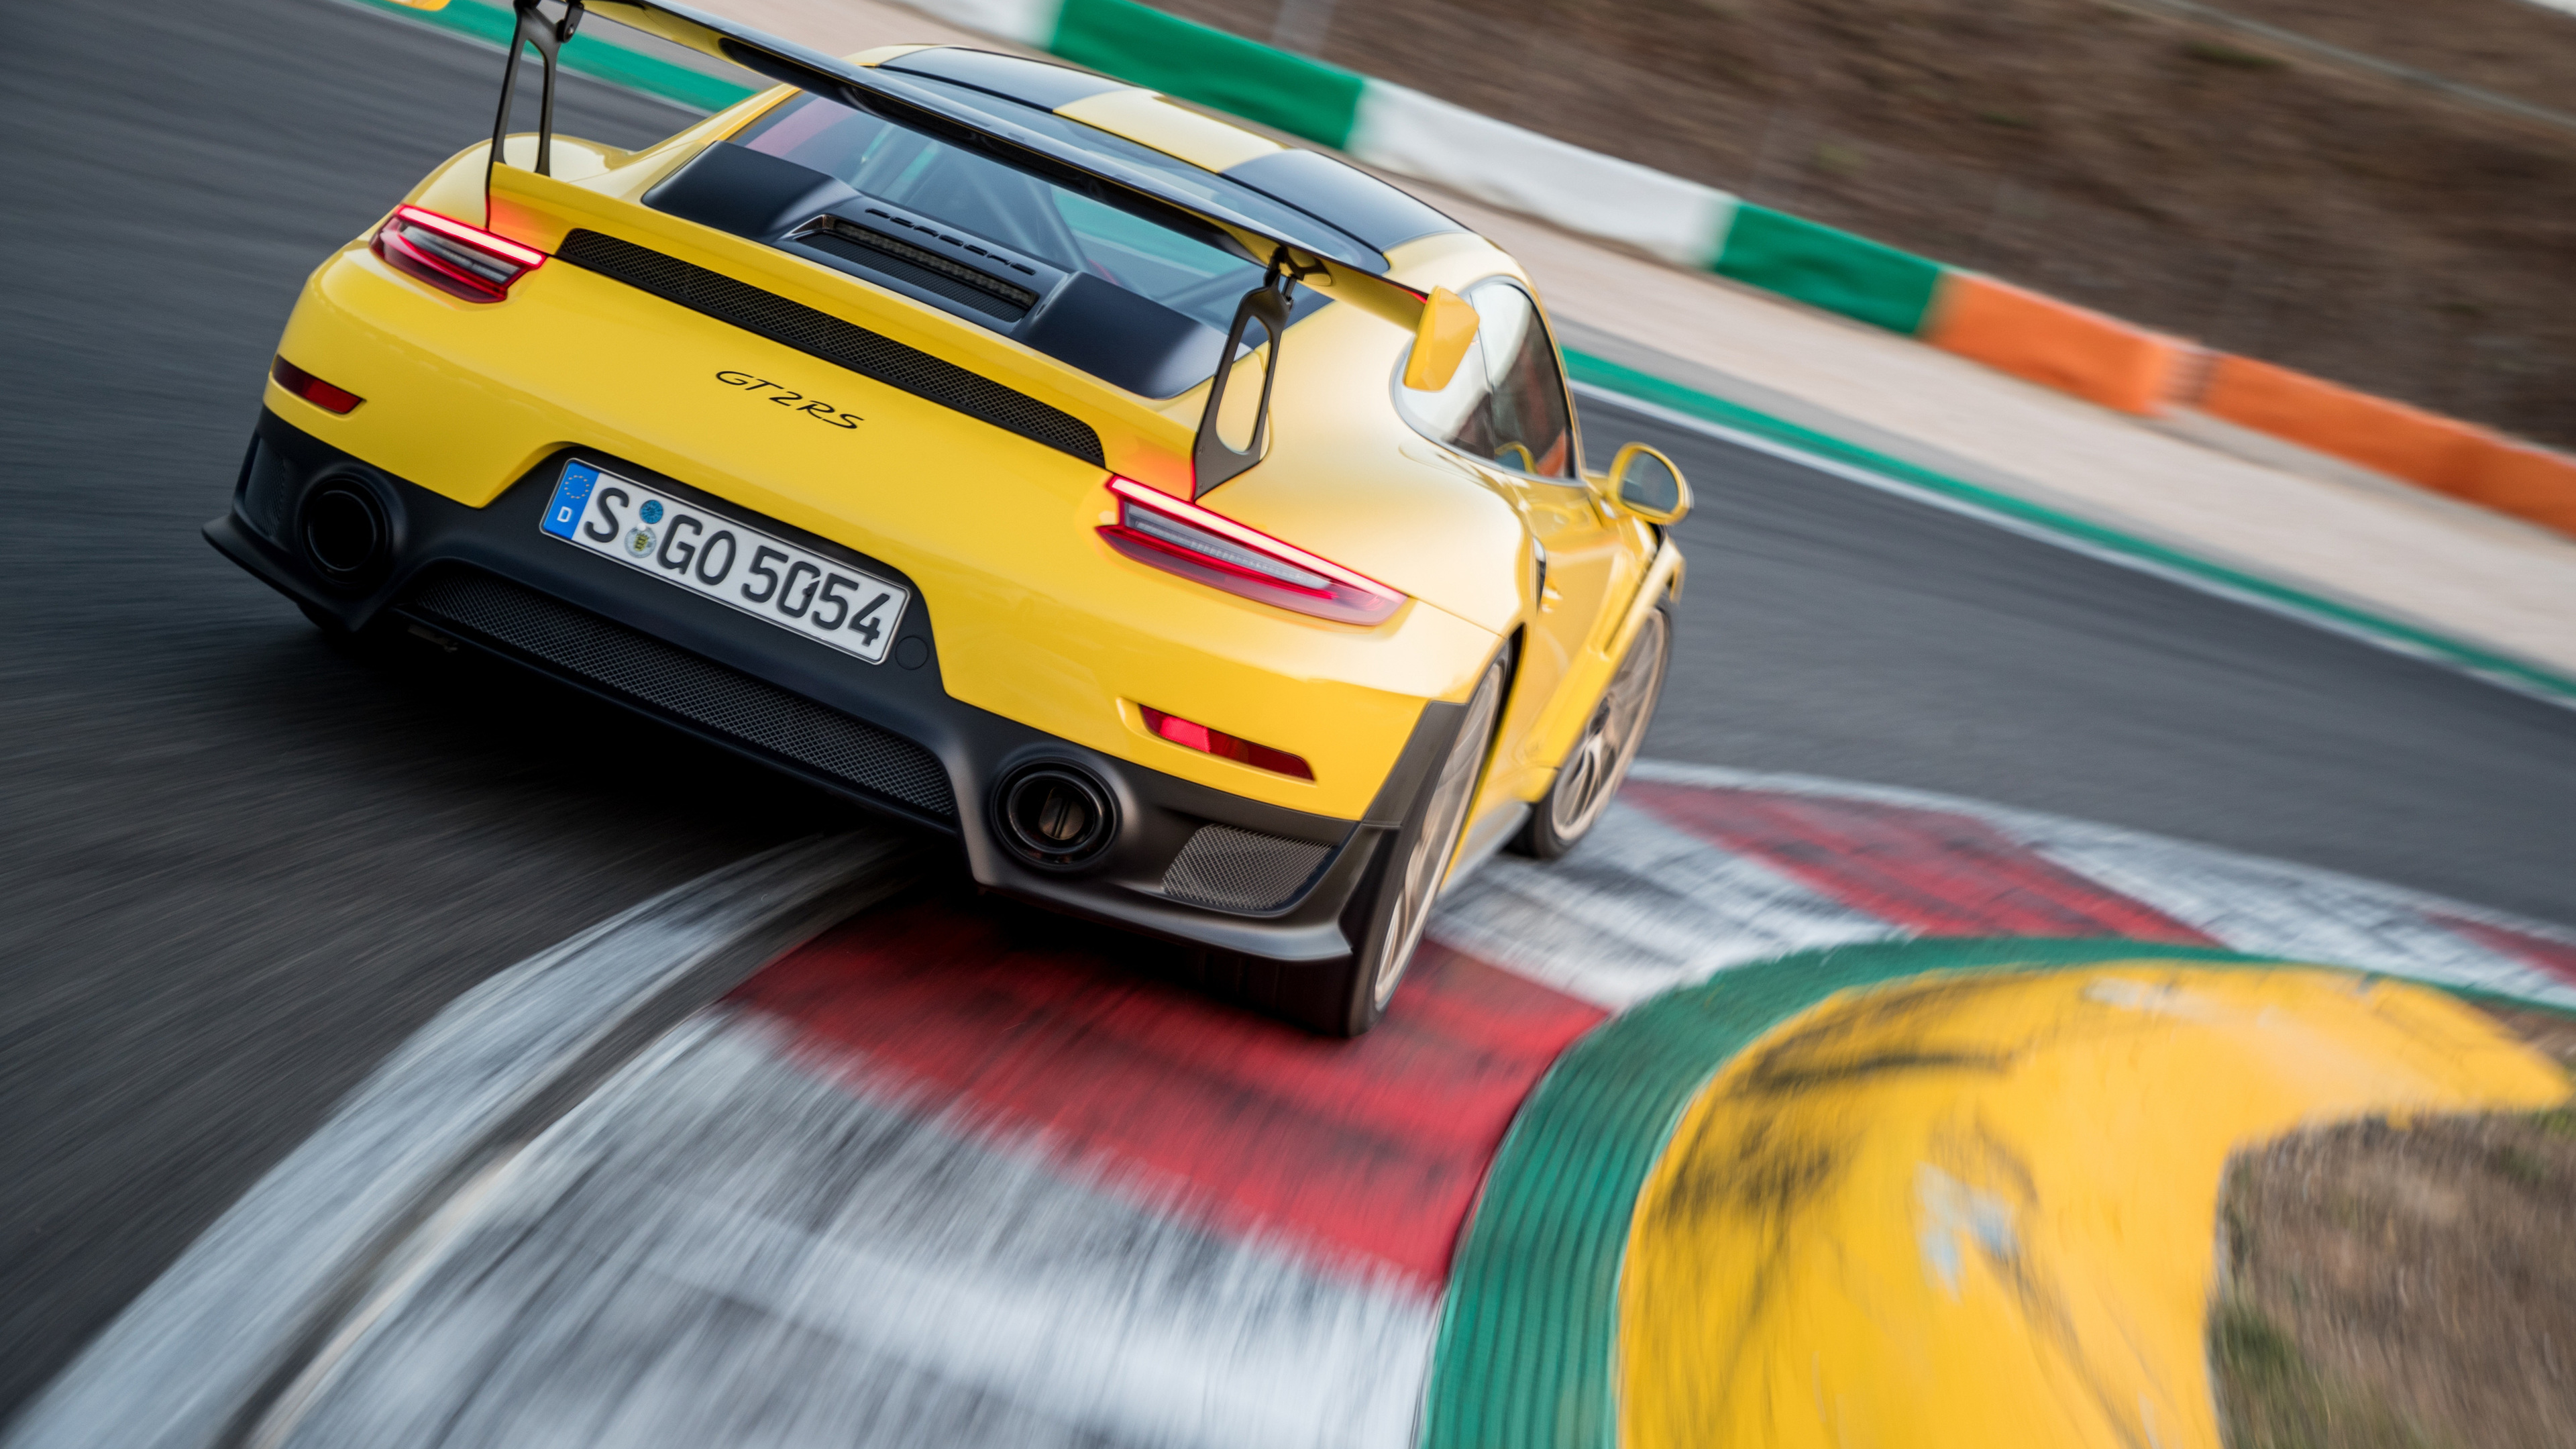 2017 porsche 911 gt2 rs 1539107549 - 2017 Porsche 911 GT2 RS - porsche wallpapers, porsche 911 wallpapers, hd-wallpapers, hd wallpapers2017 cars wallpapers, cars wallpapers, 4k-wallpapers